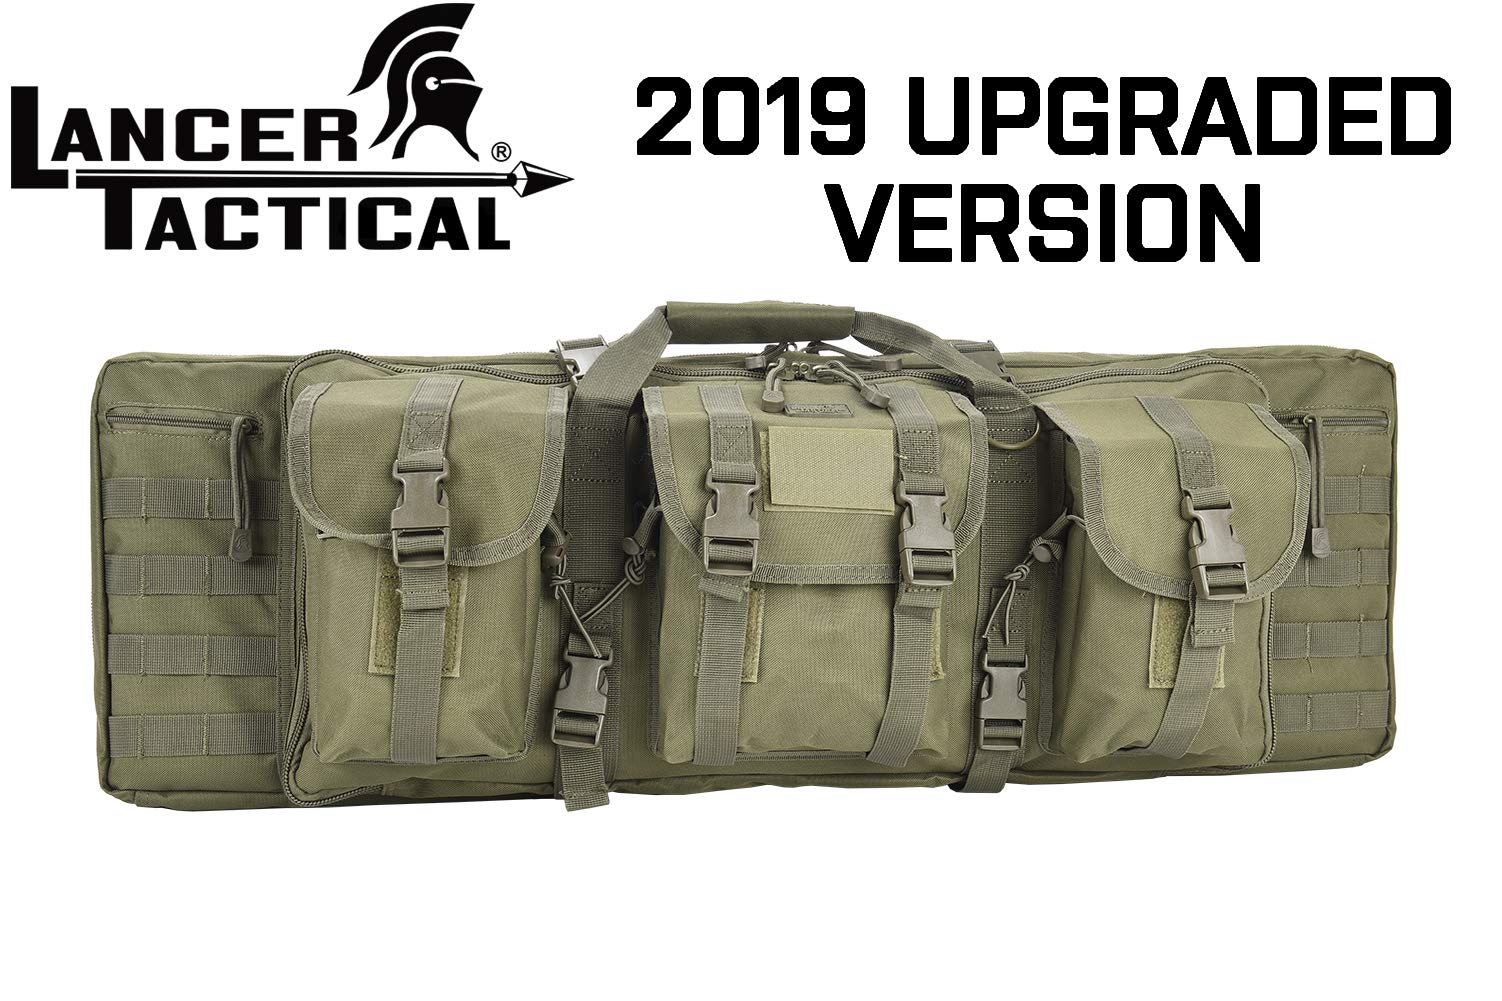 Lancer Tactical Rifle Case 600D Polyester Double Long Rifle Bag Tactical Gun Case Accessory Pouches Secondary Gun Compartment Lockable for Hunting Shooting (Olive DRAB Green, 36'' INCH) by Lancer Tactical